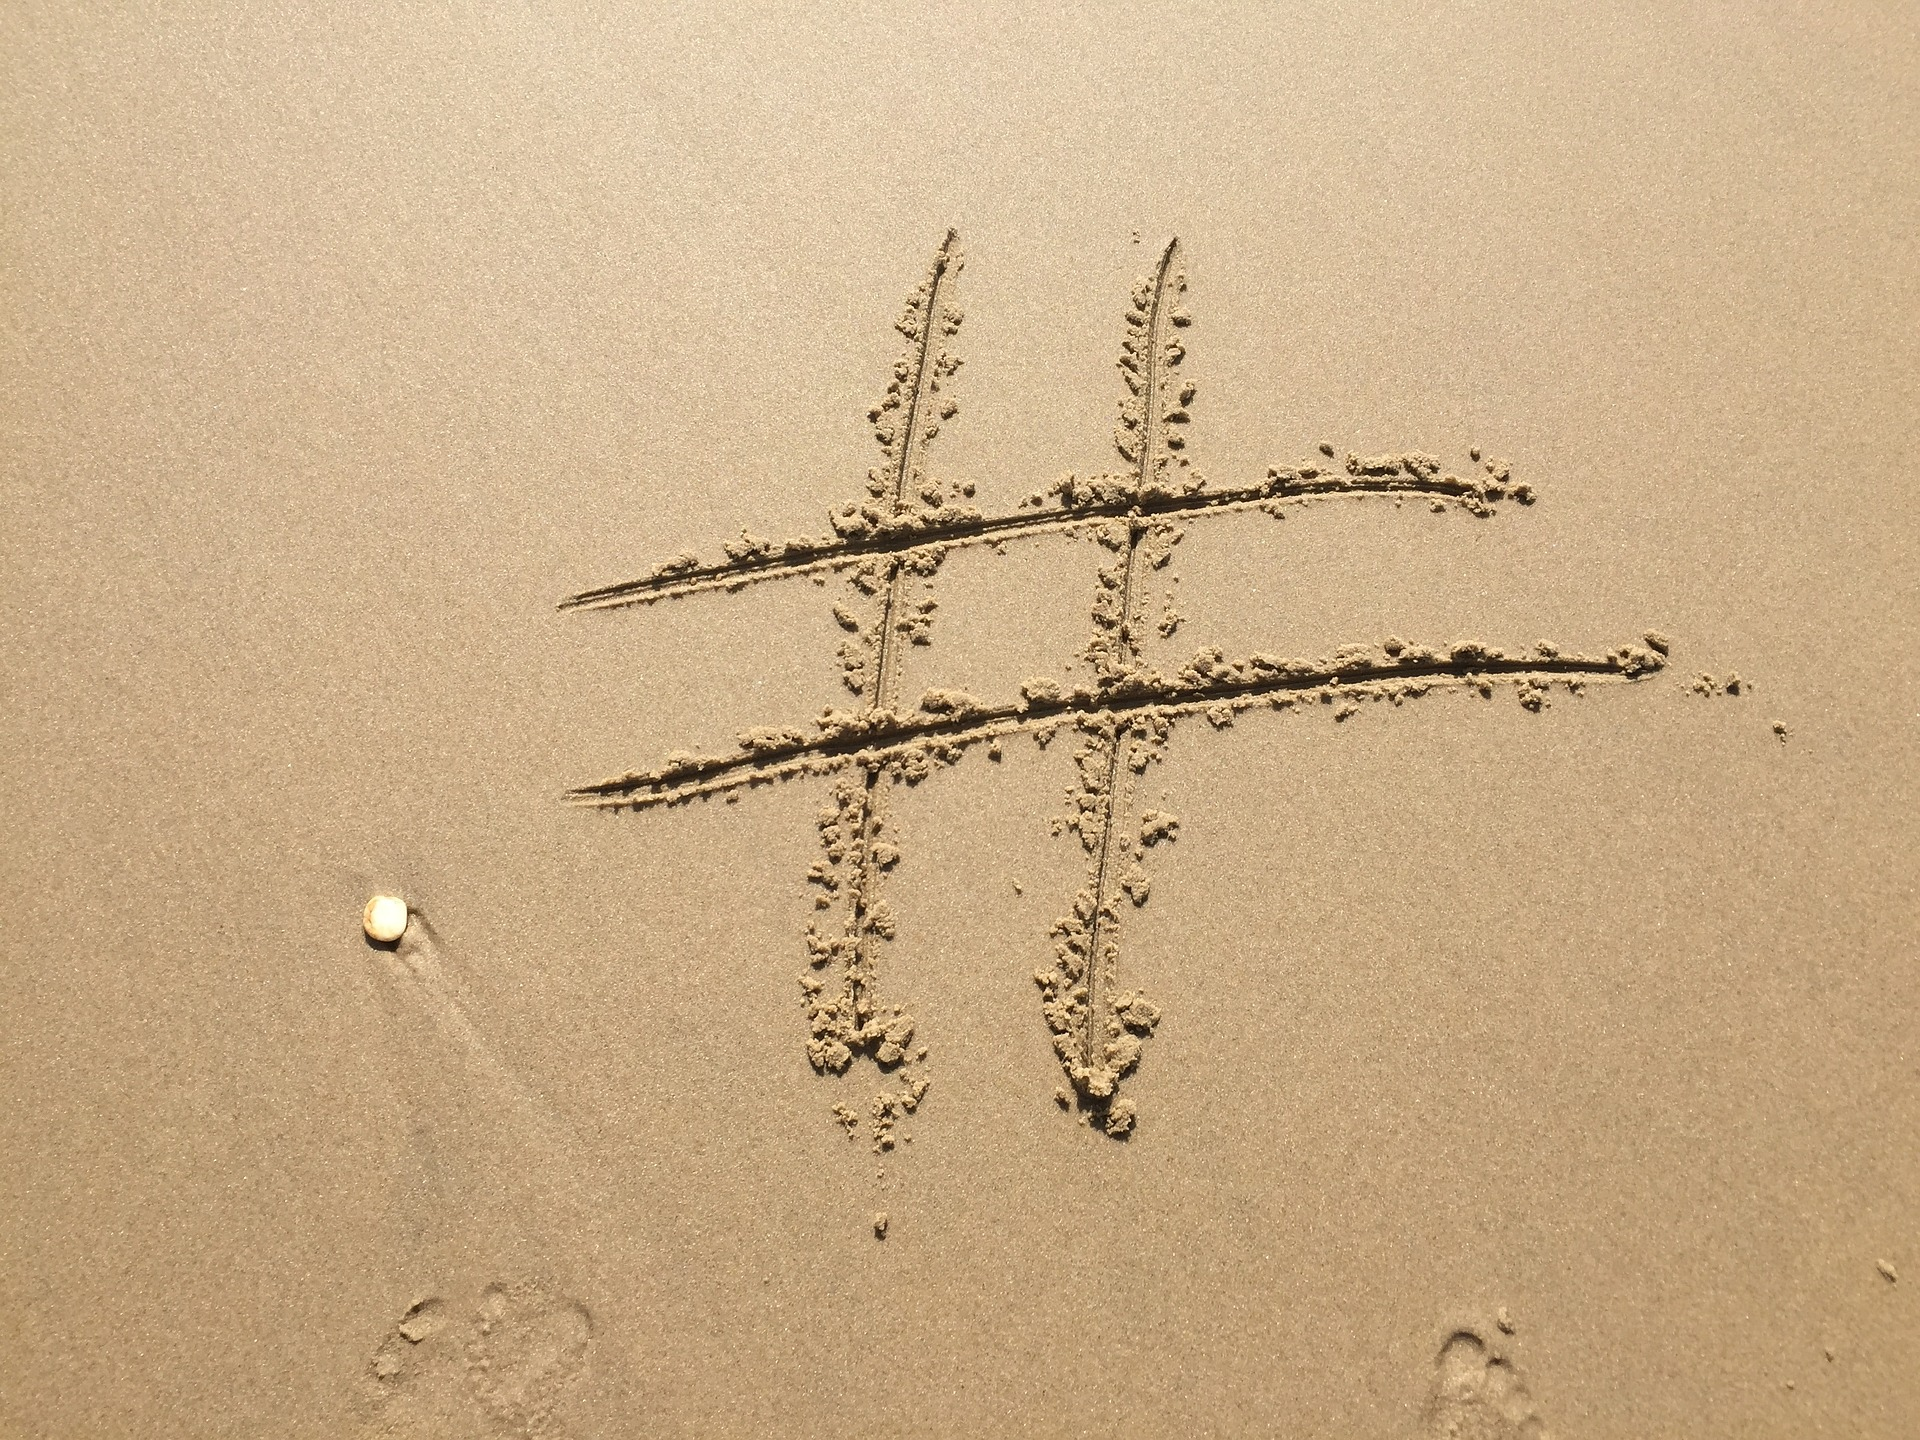 use of hashtags in Nigeria